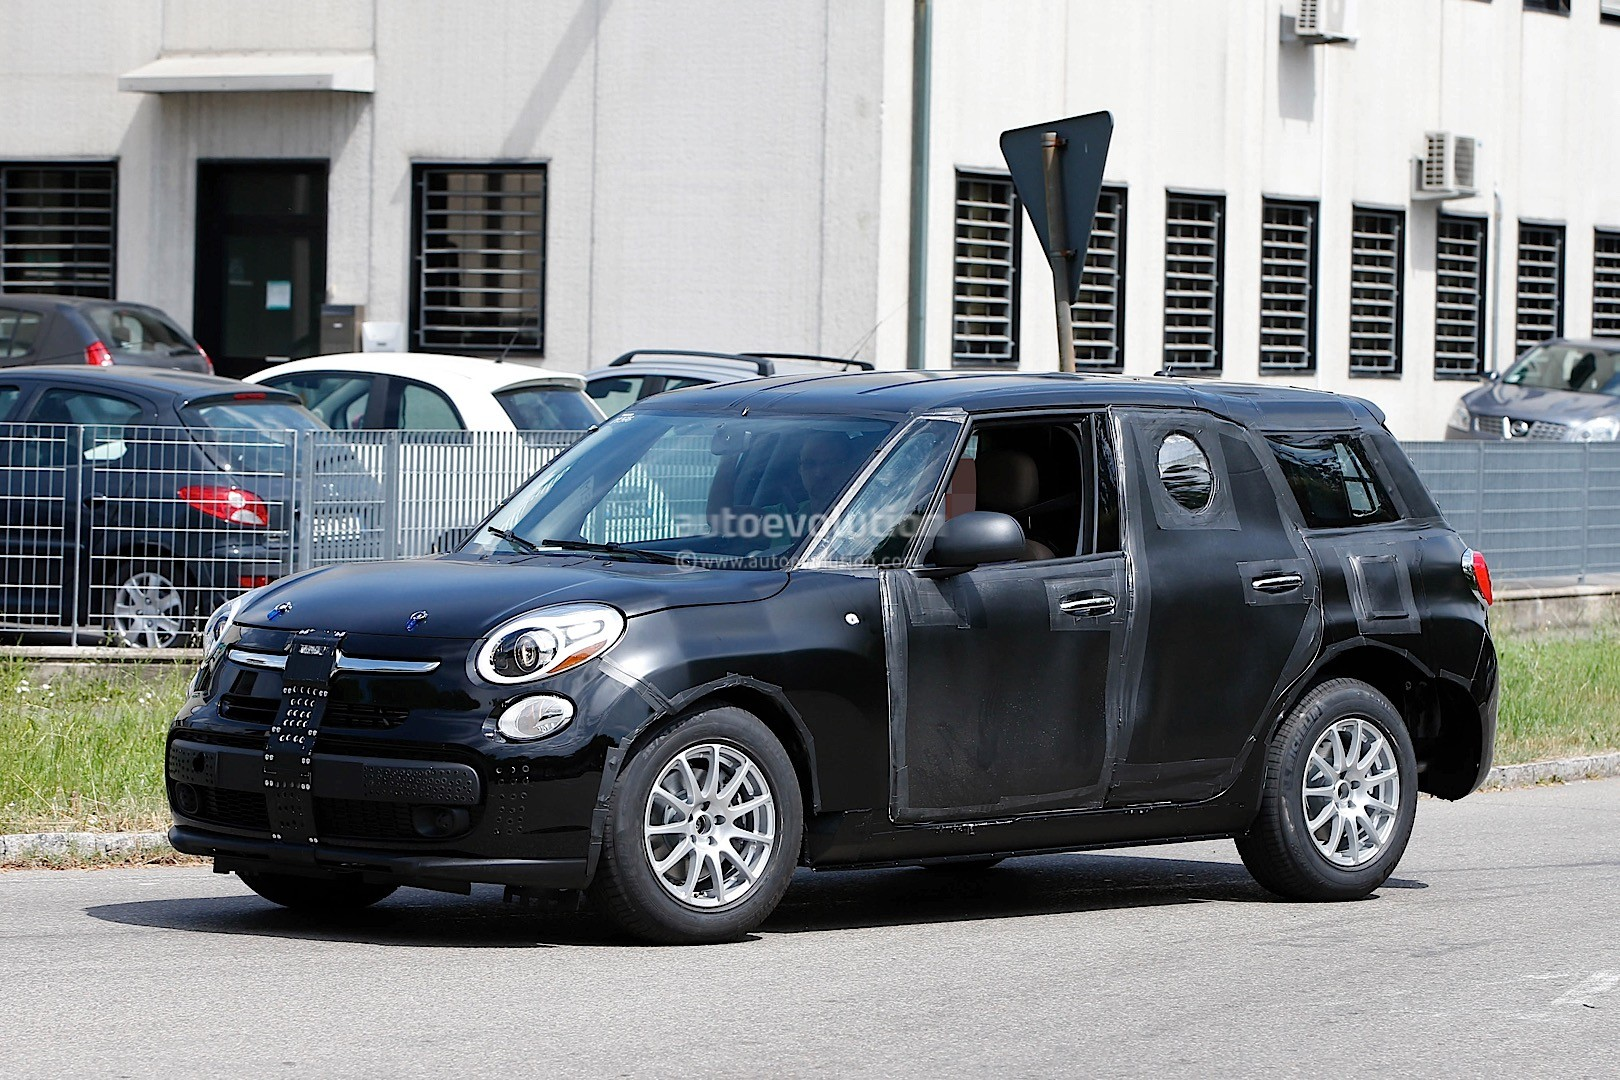 2017 alfa romeo tipo 949 crossover suv spied wearing a fiat 500l body autoevolution. Black Bedroom Furniture Sets. Home Design Ideas